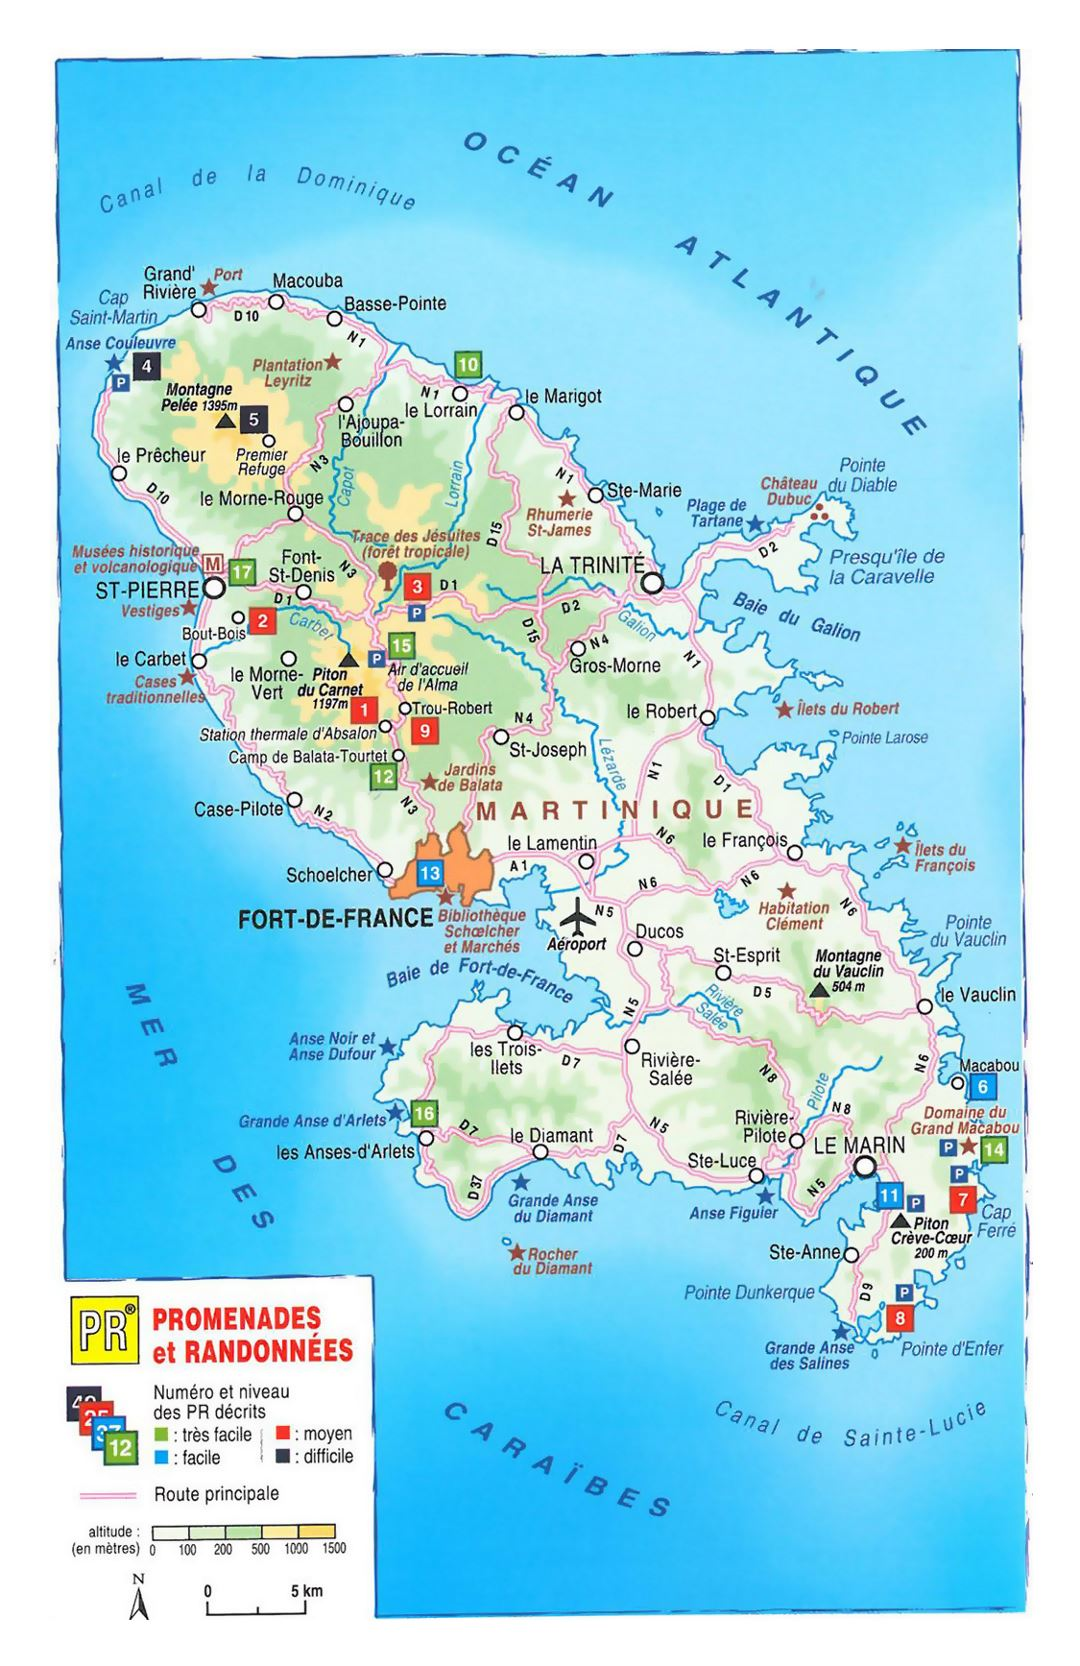 Detailed elevation map of Martinique with other marks